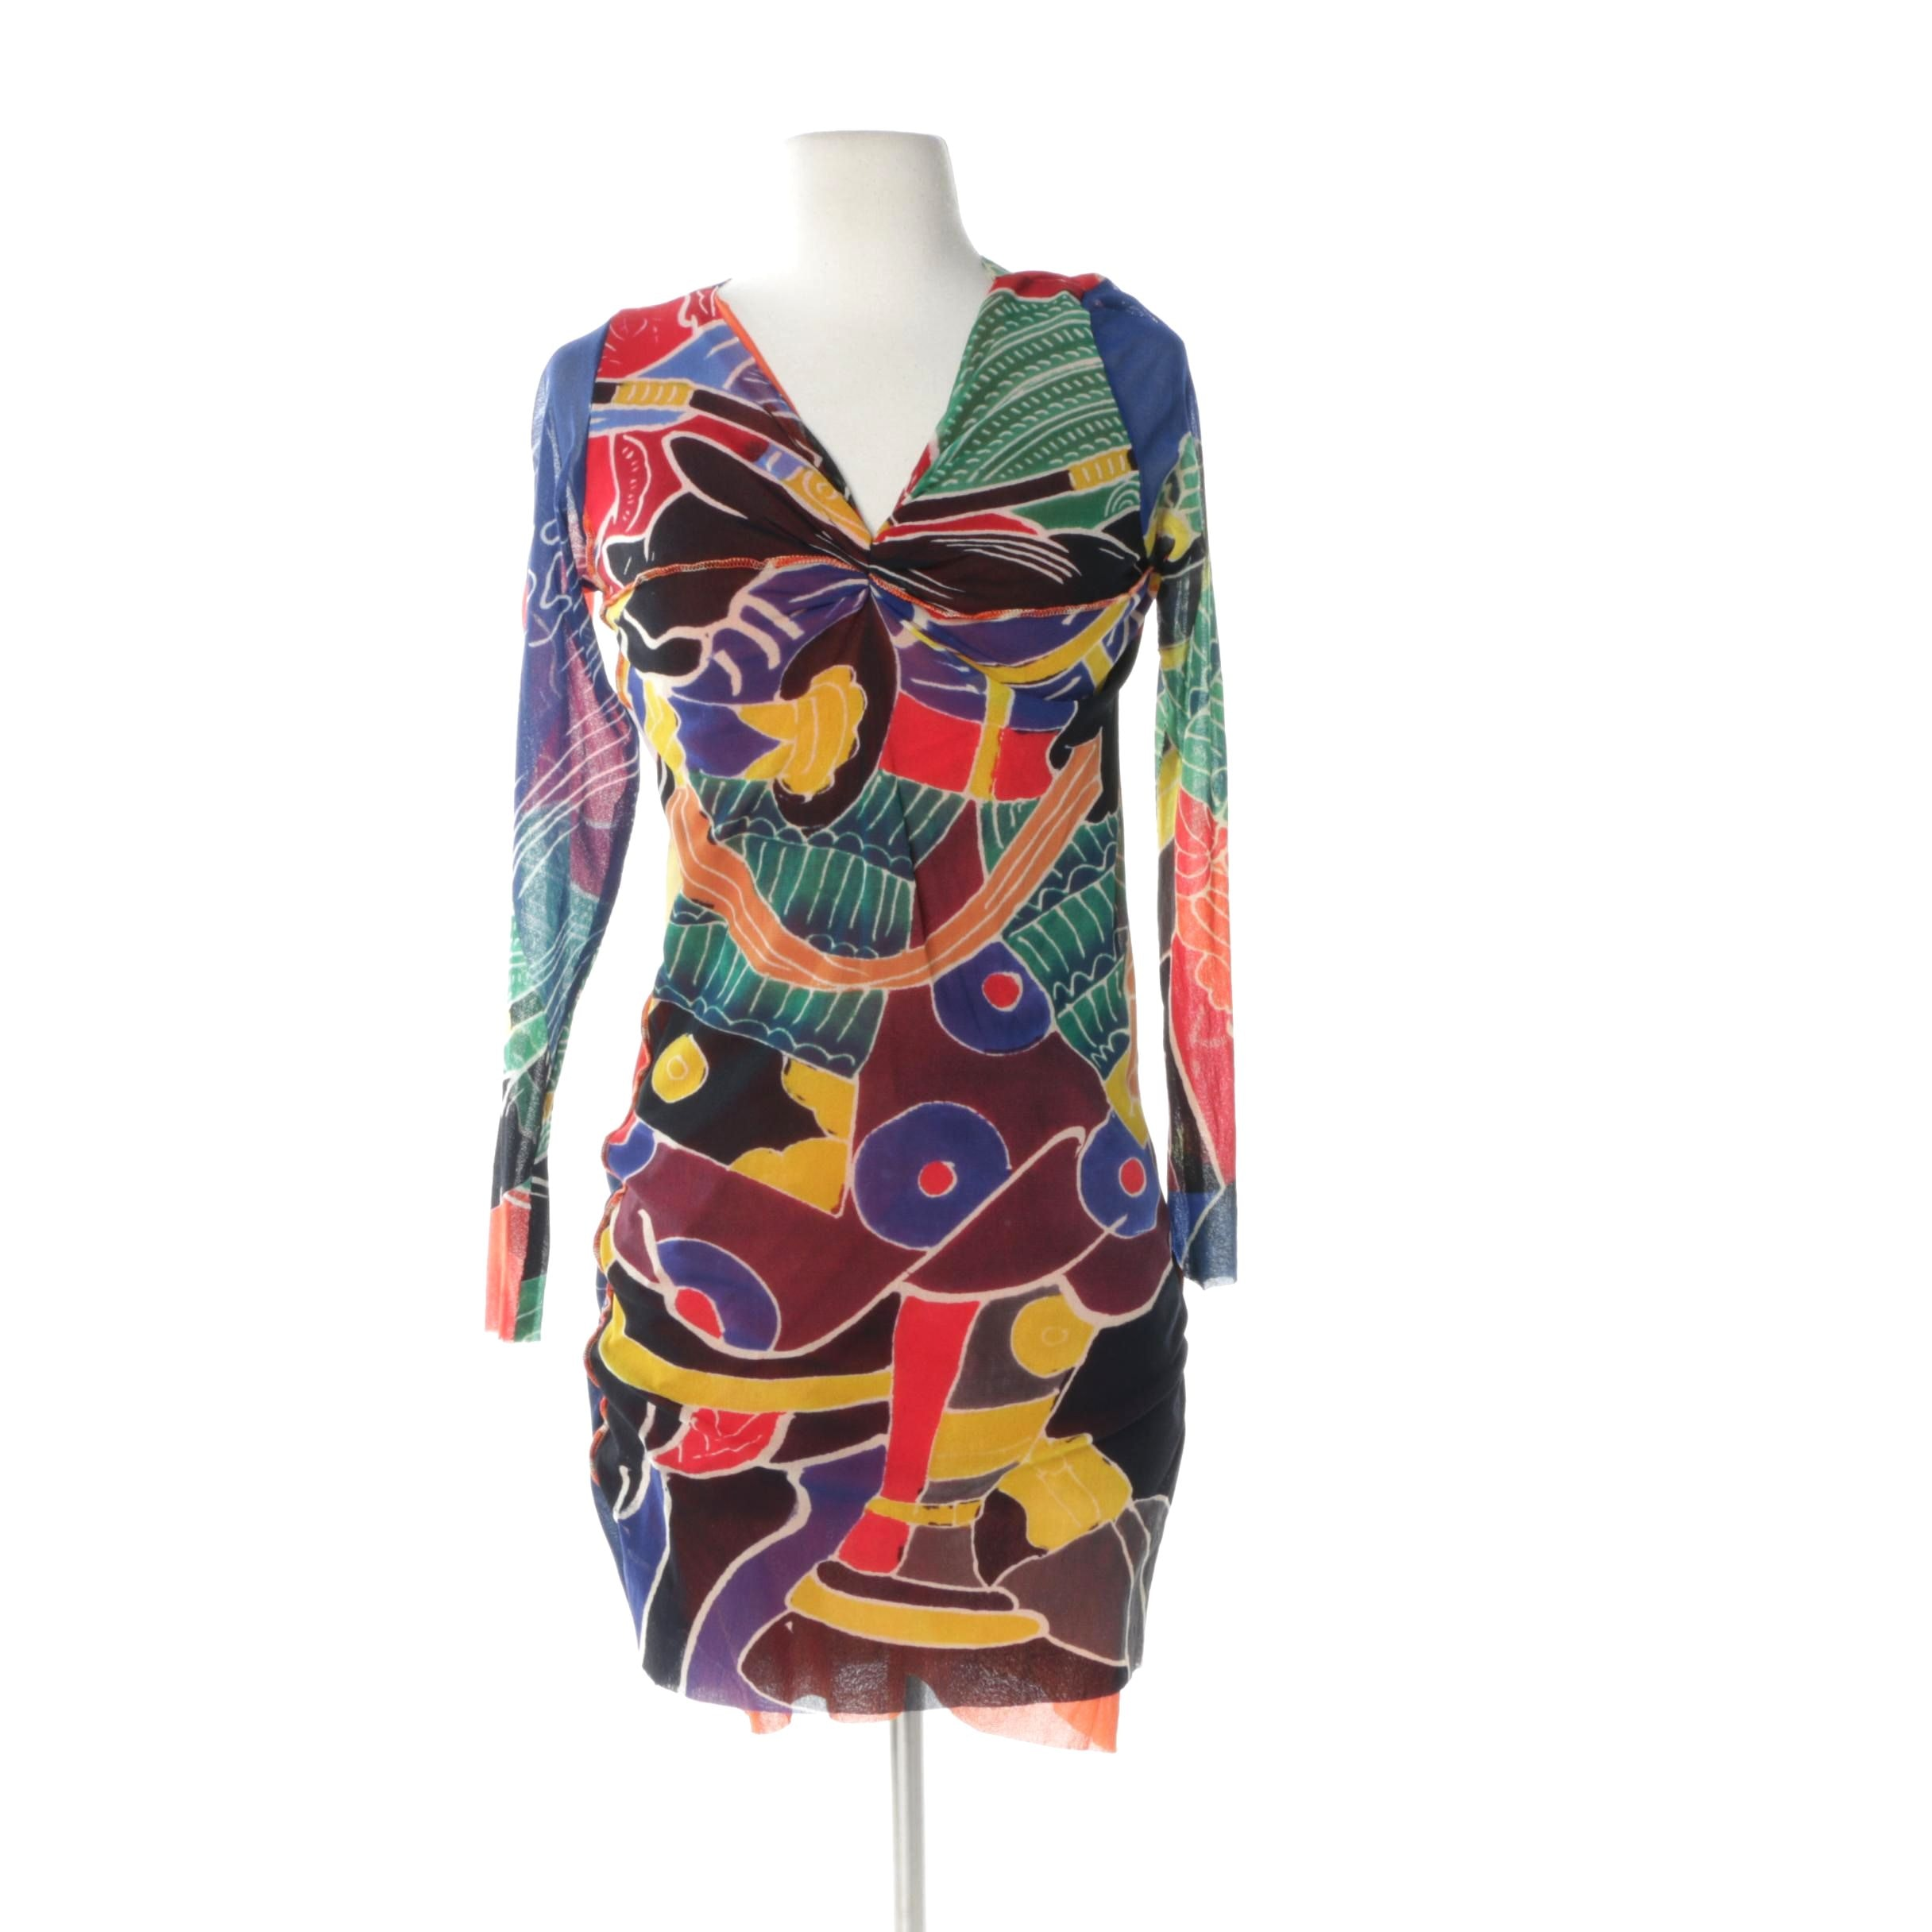 1990s Jean Paul Gaultier Maille Colorful Print Bodycon Dress